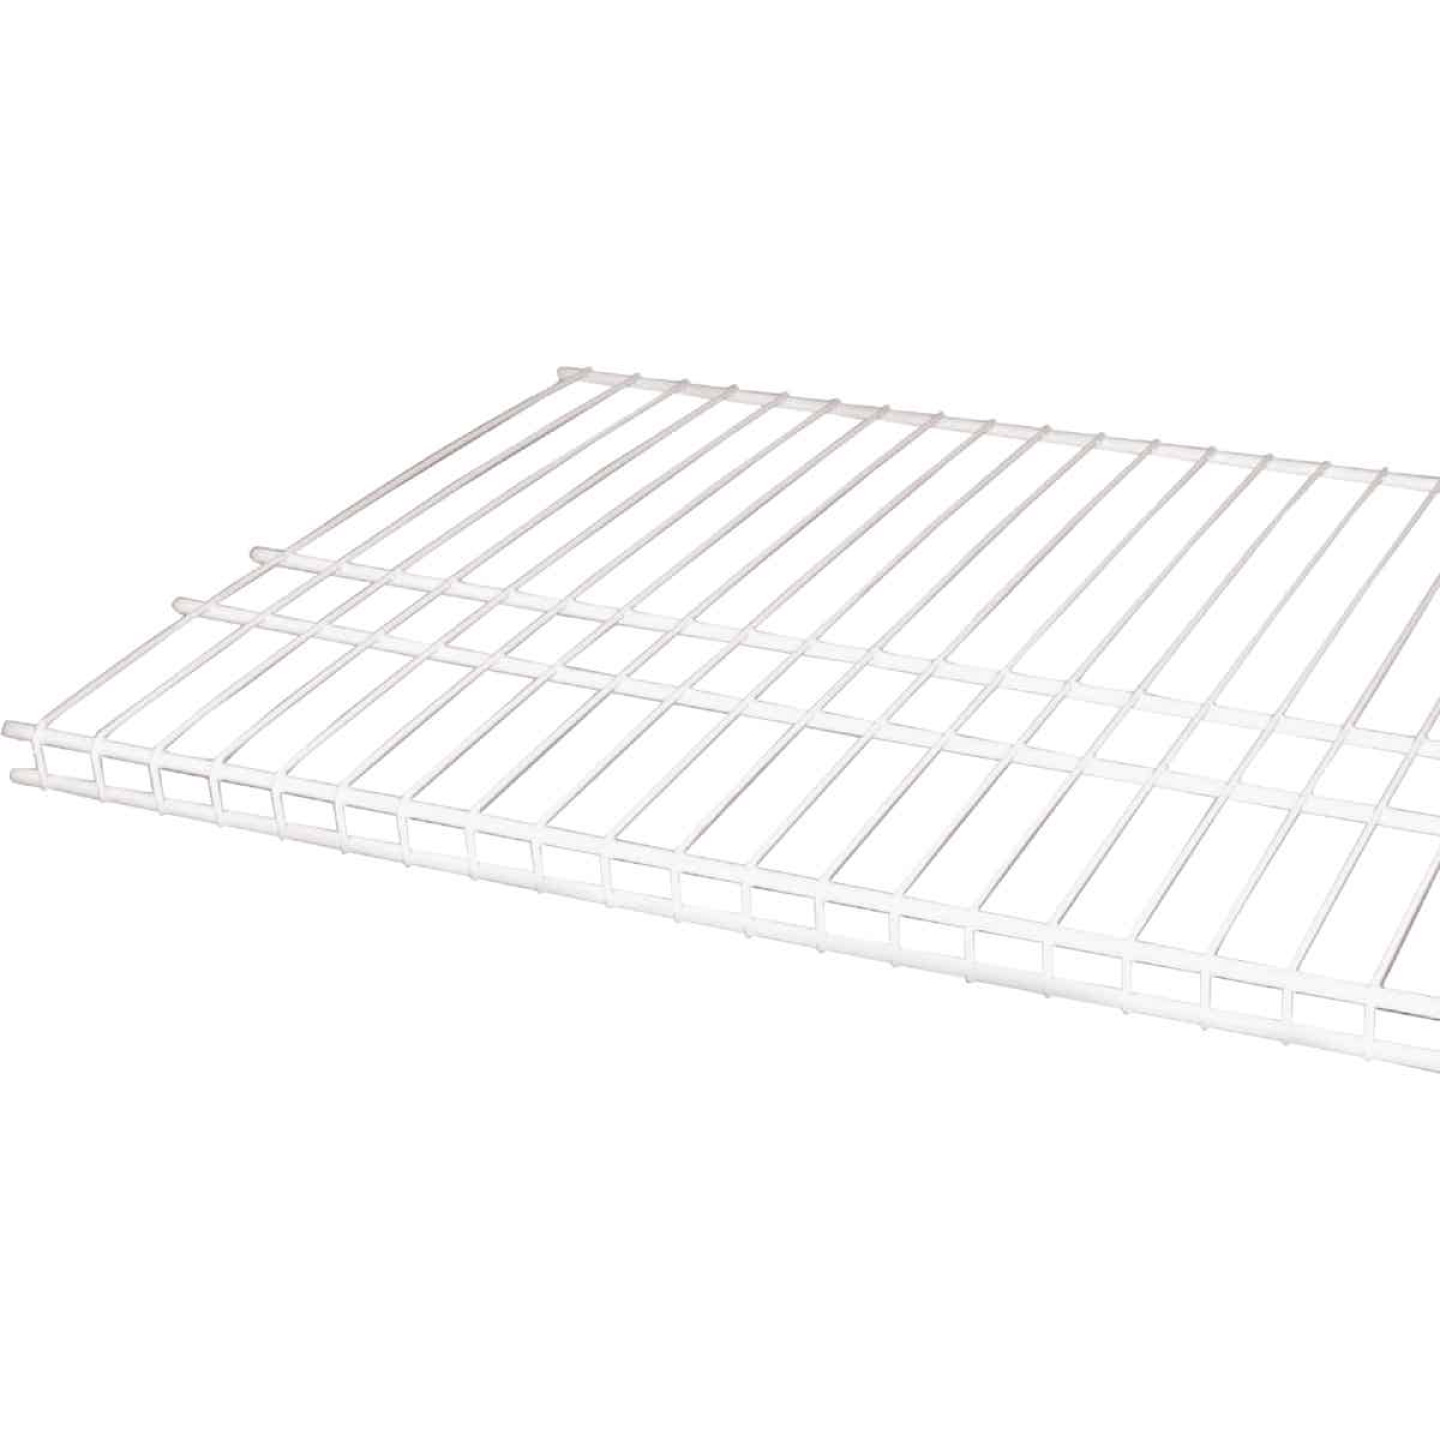 ClosetMaid SuperSlide 12 Ft. W. x 16 In. D. Ventilated Closet Shelf, White Image 2